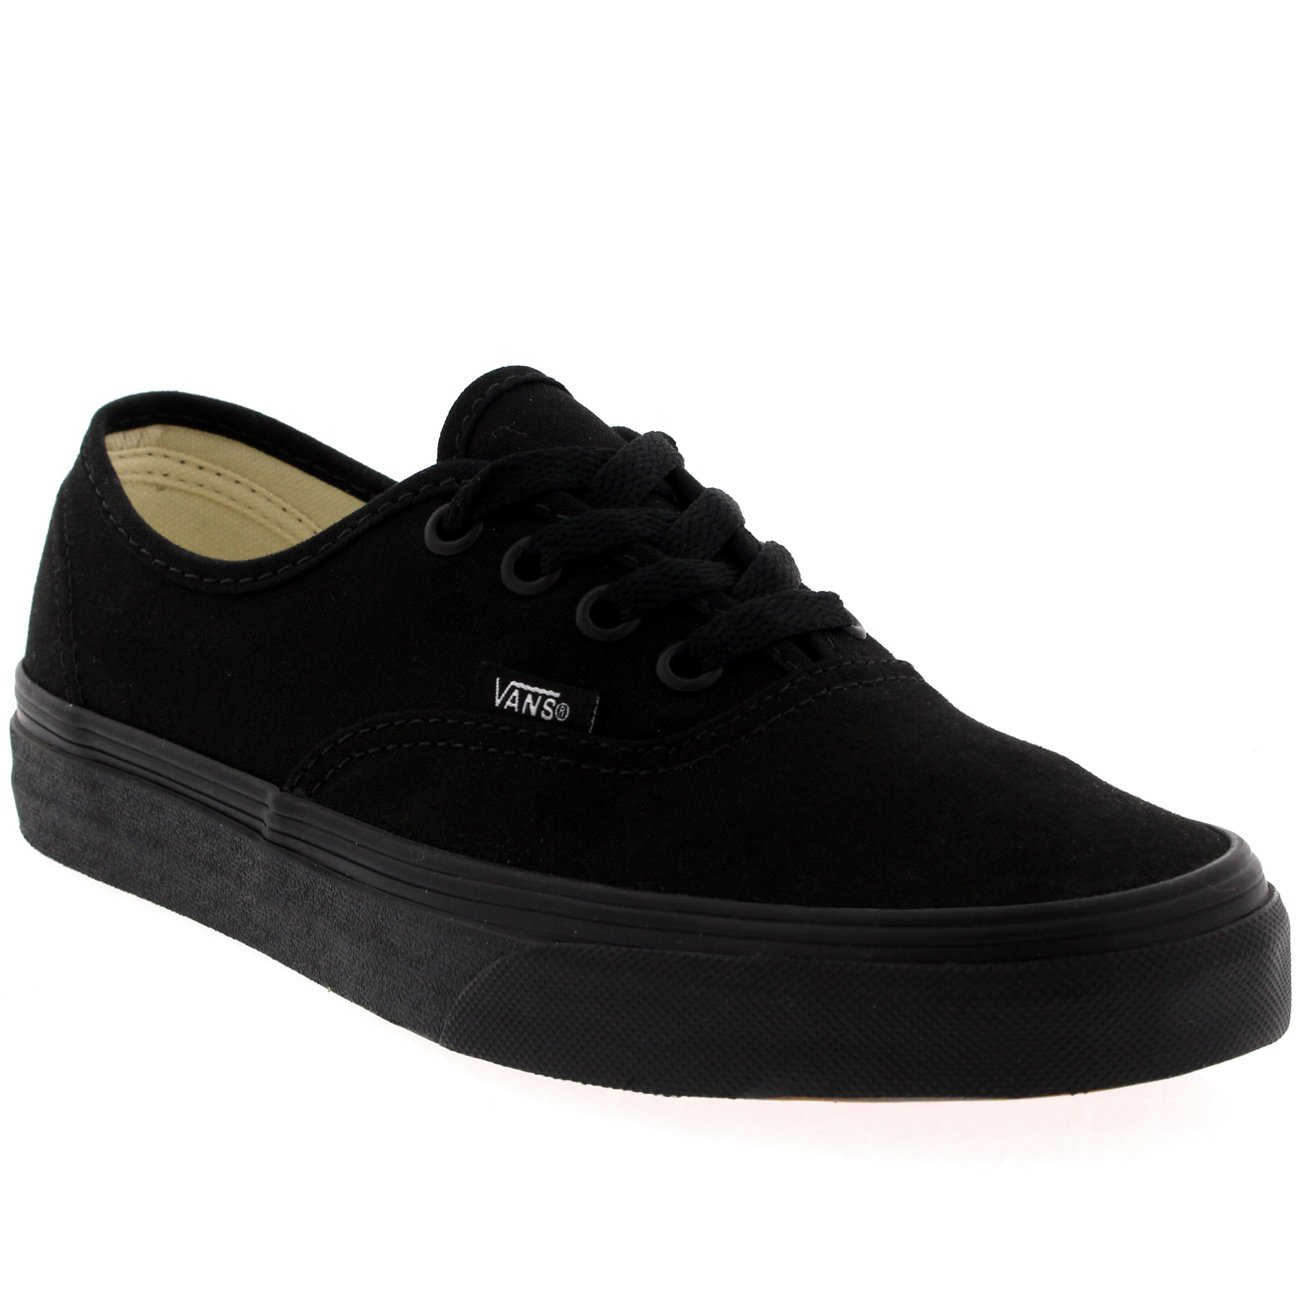 Vans Authentic Unisex Skate Trainers Shoes Black/Black 7 B(M) US Women/5.5 D(M) US Men